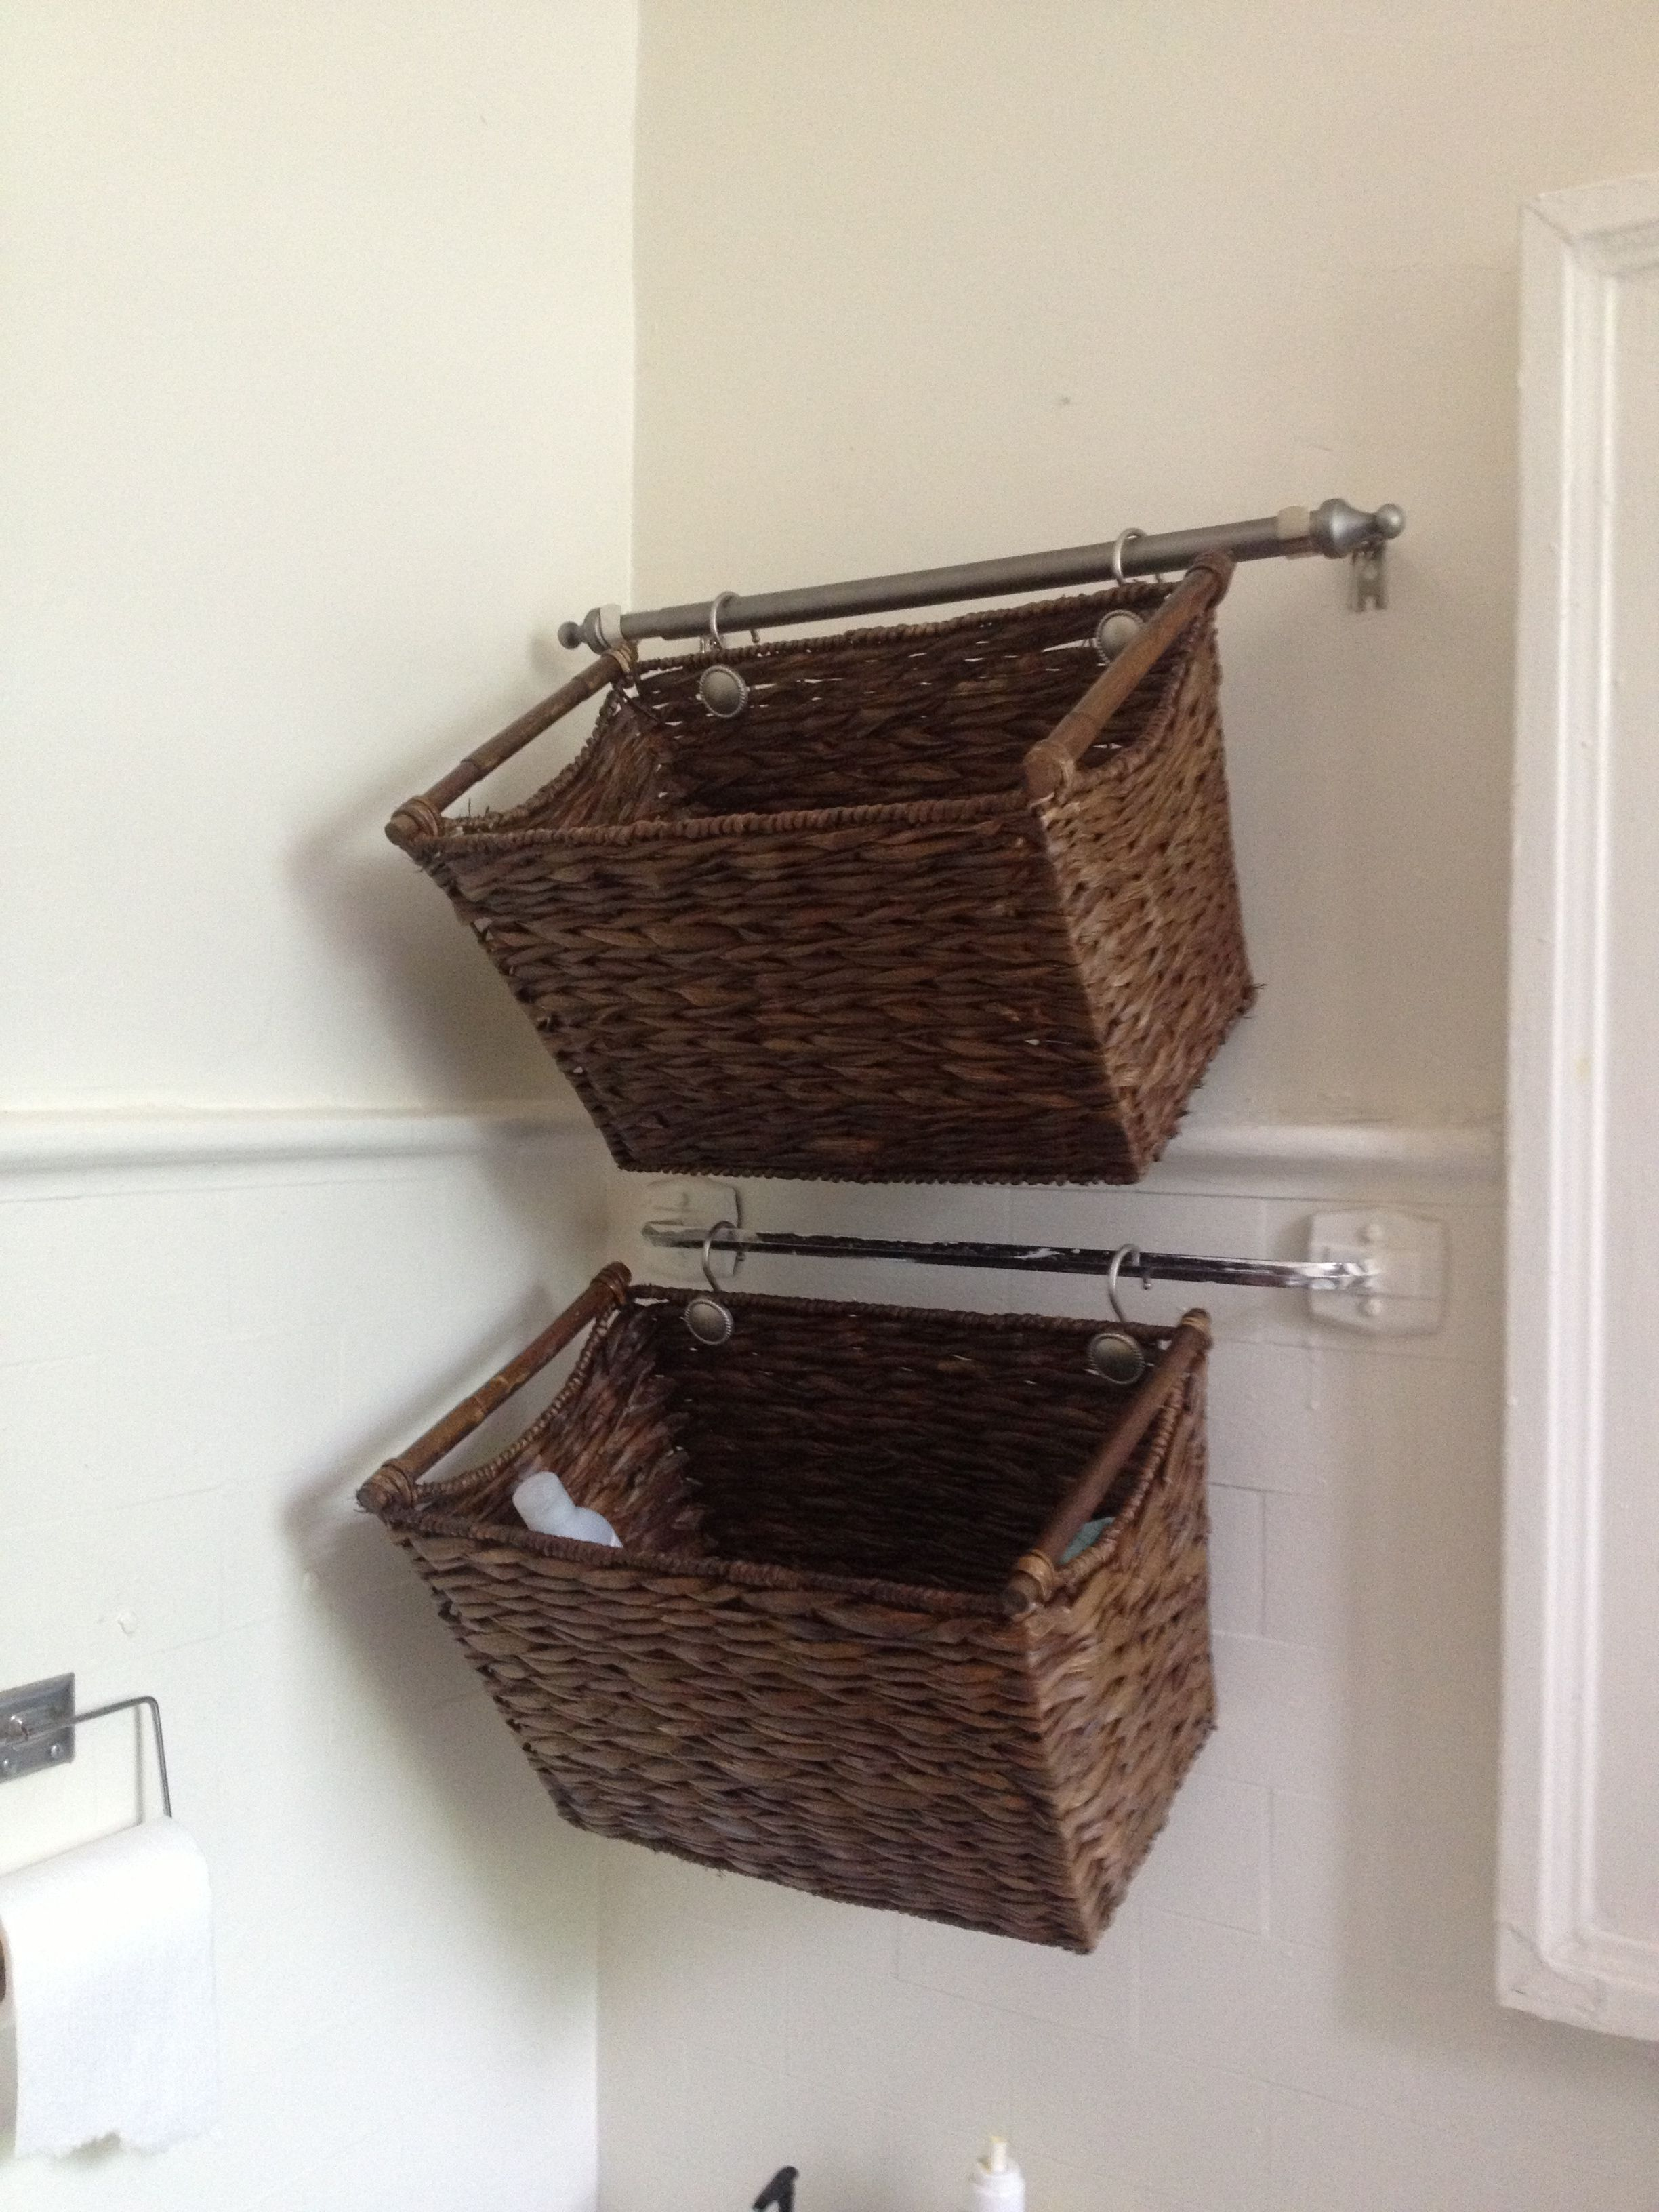 Cut Down A Curtain Rod And Hang Wicker Baskets For Cute U0026 Easy Bathroom  Storage!